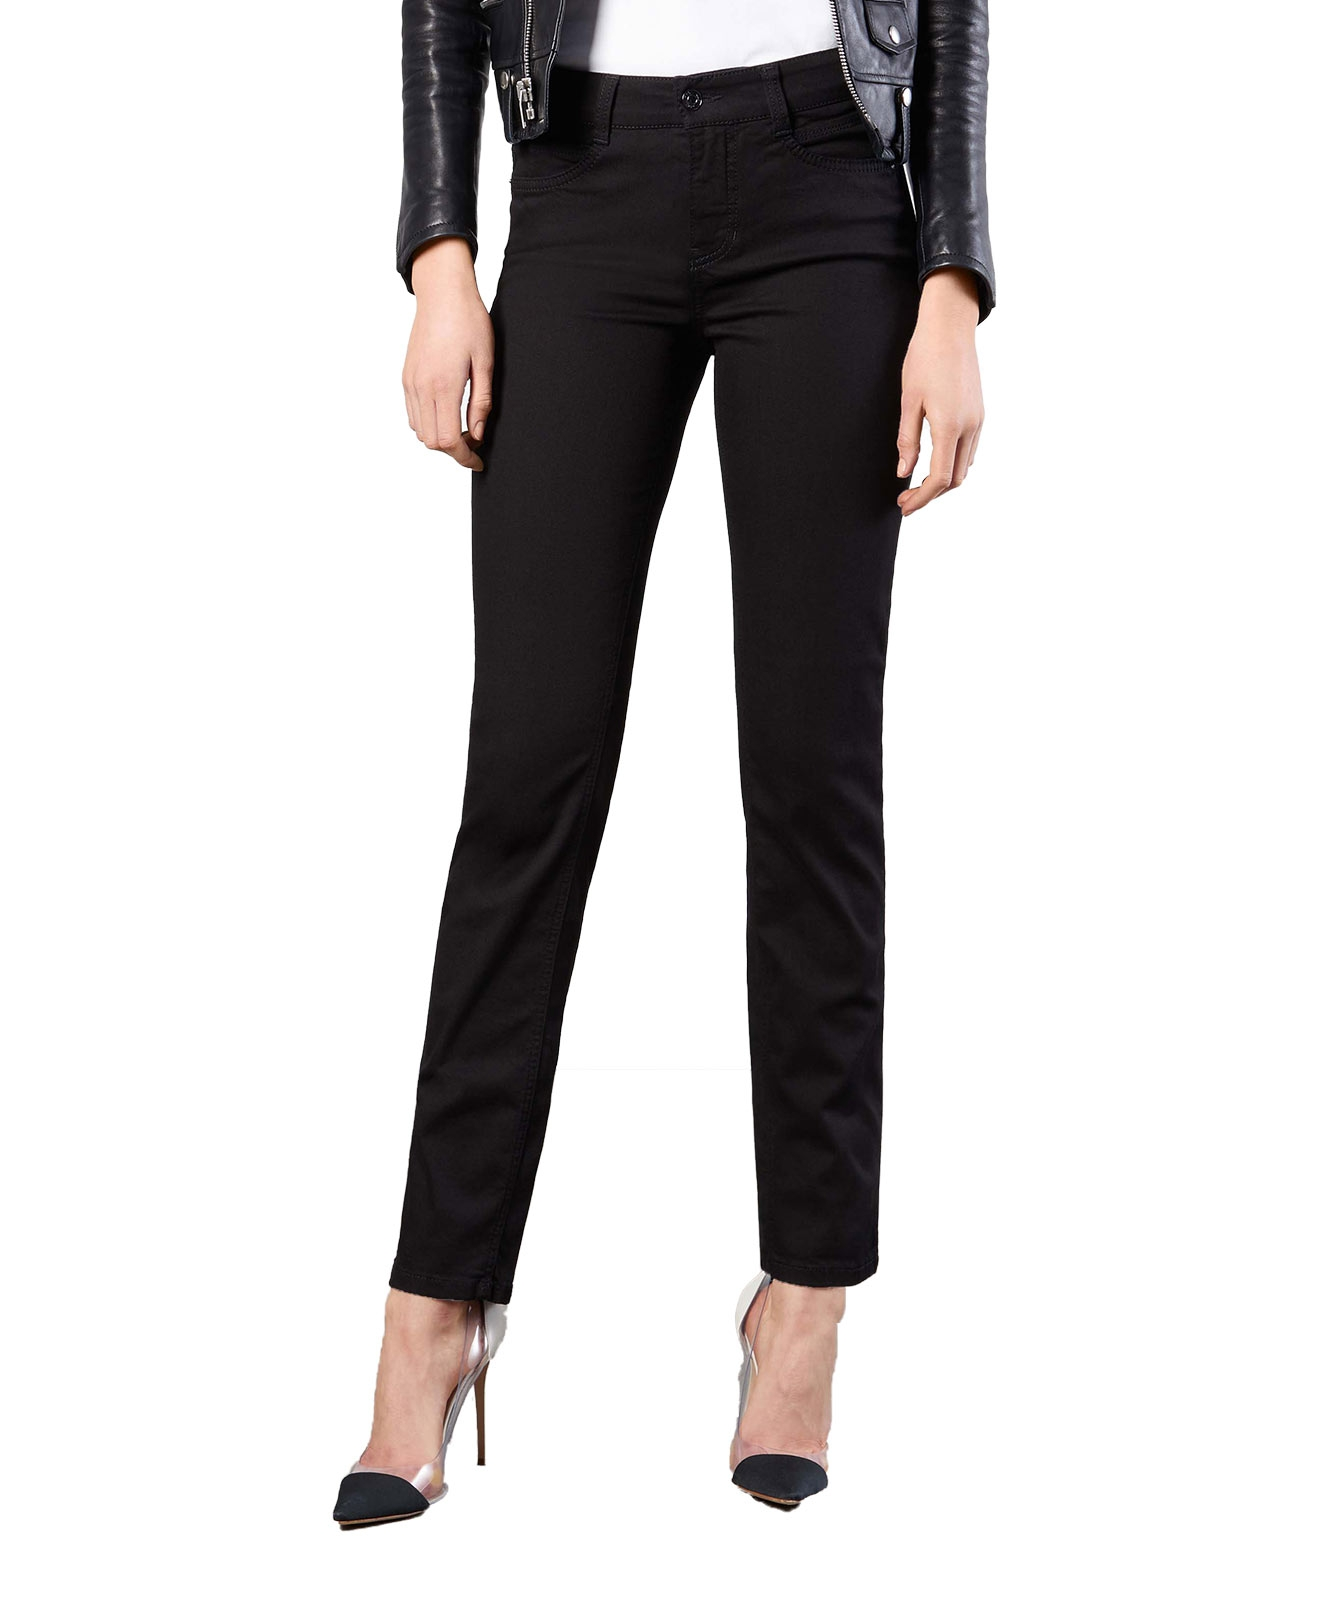 Hosen - MAC Slim Fit Jeans Angela in Black Black  - Onlineshop Jeans Meile